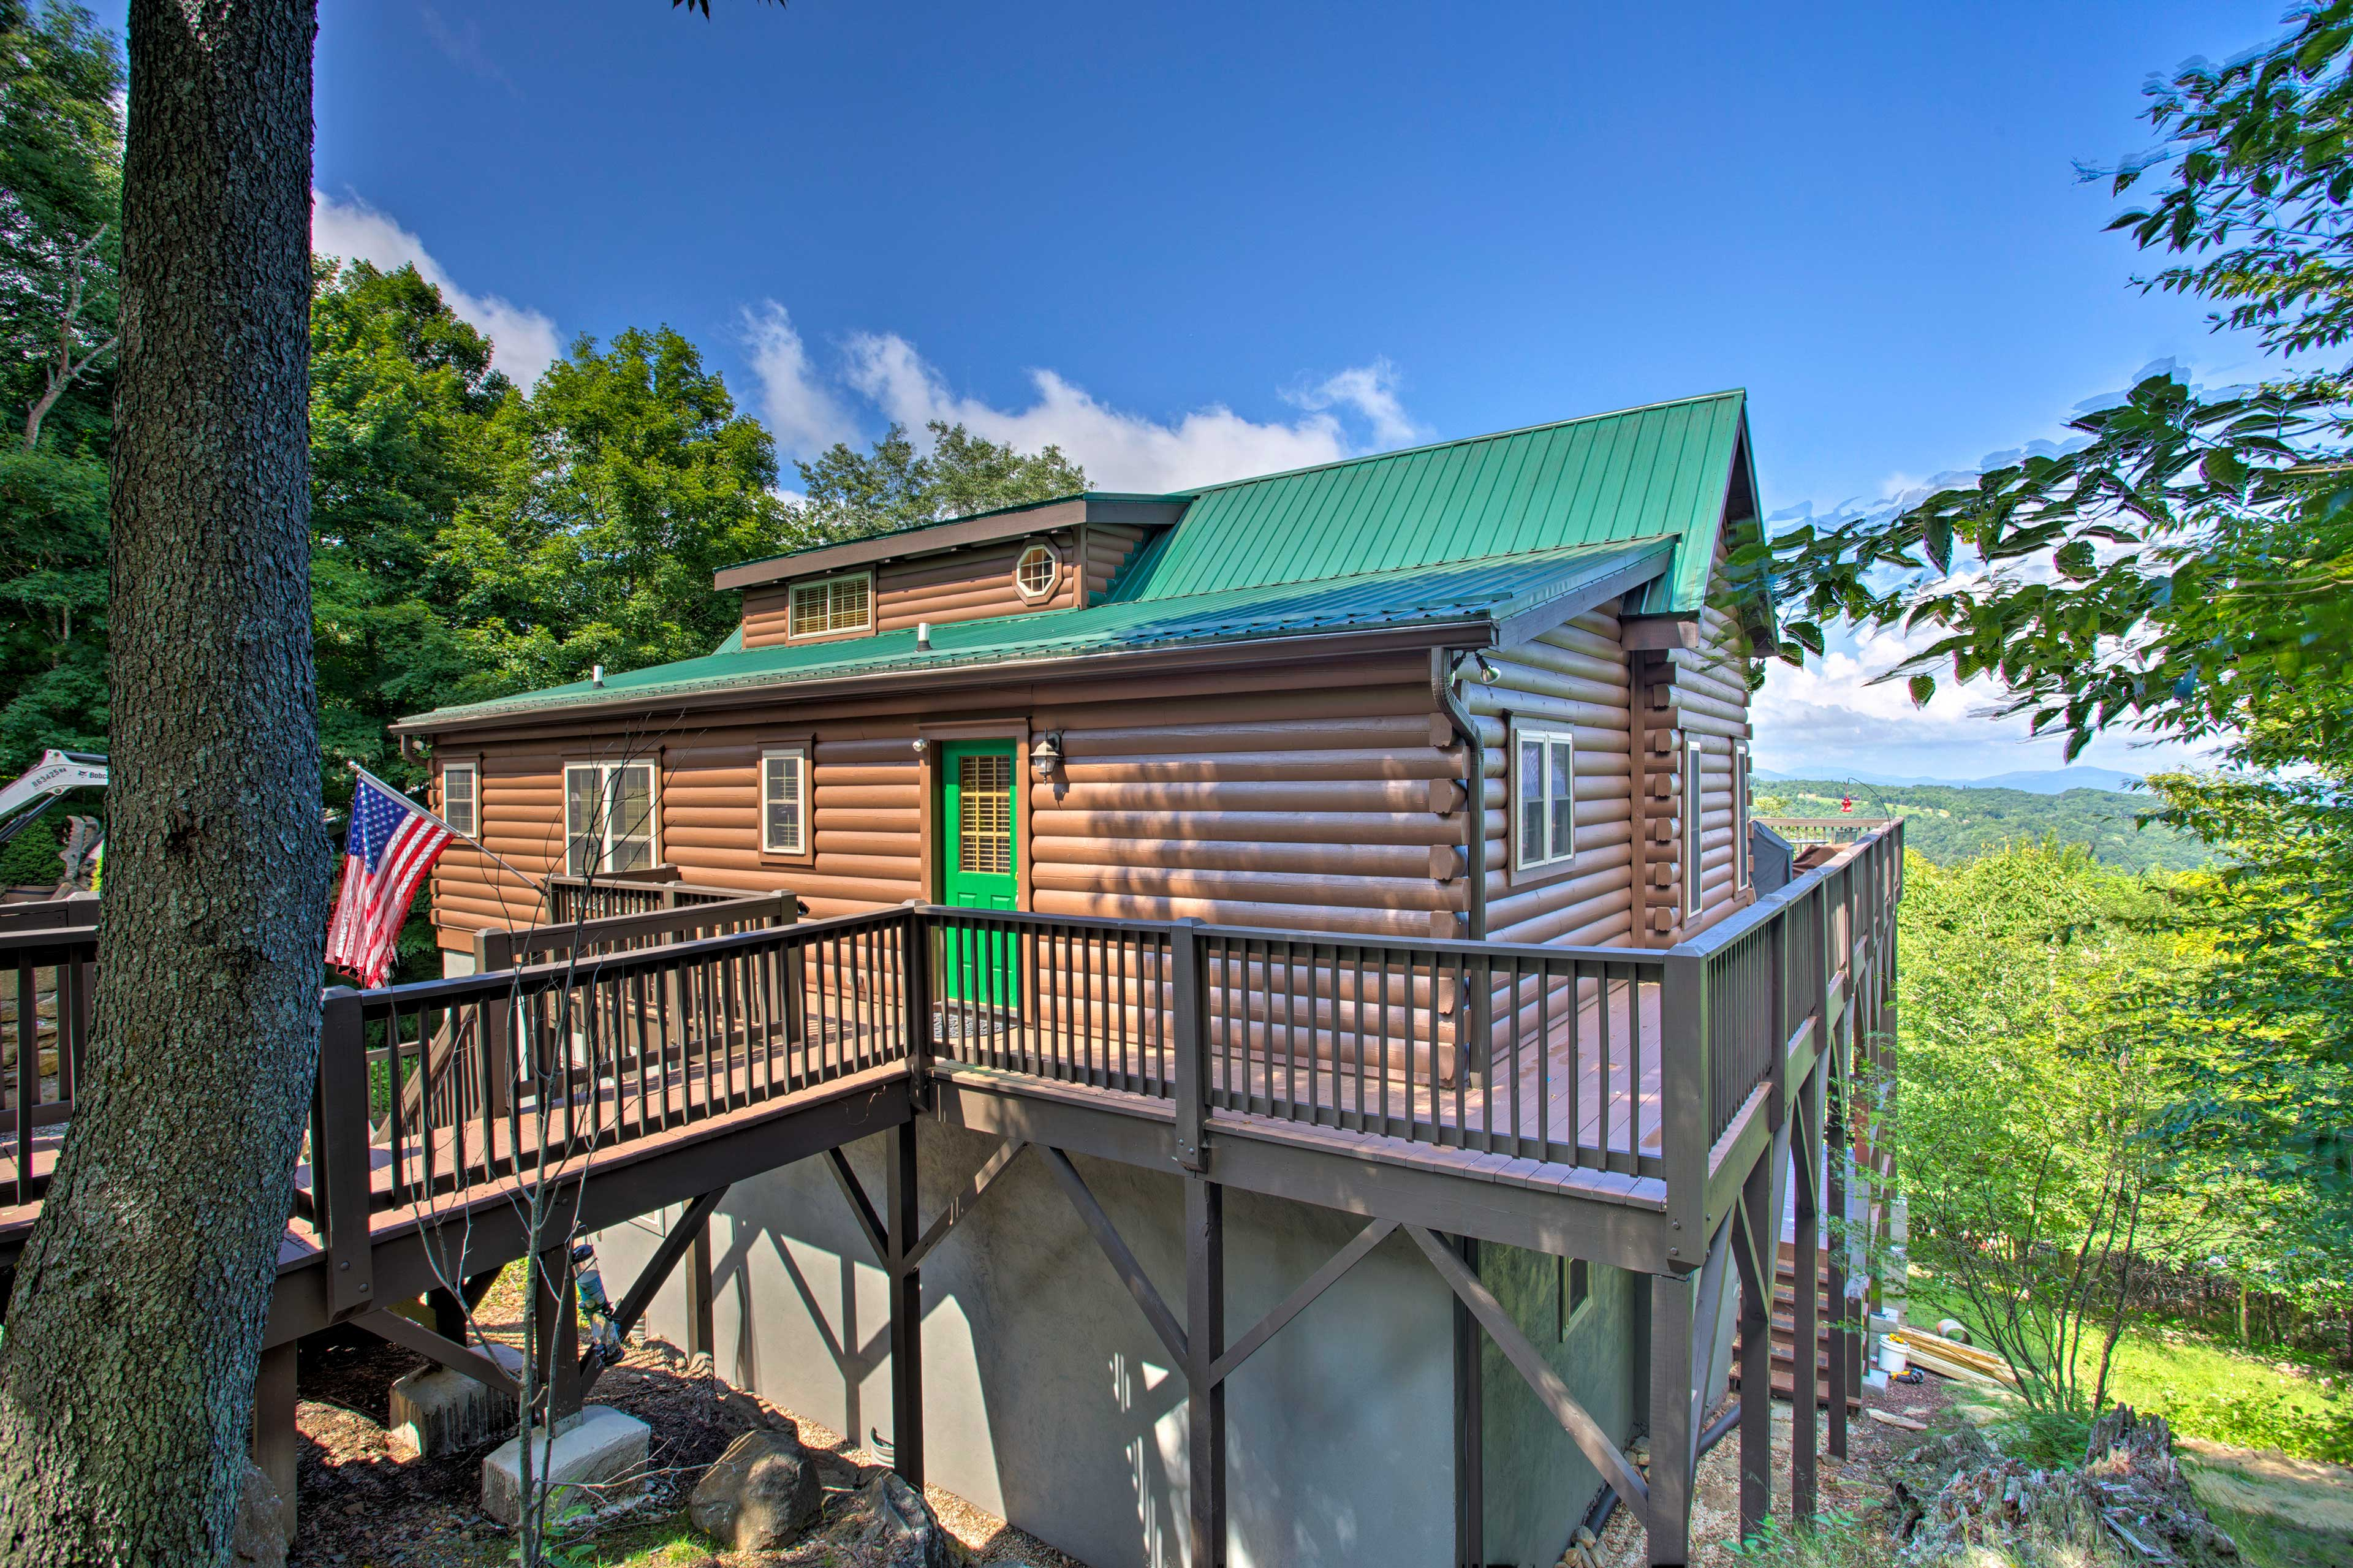 'House of Views' offers travelers the quintessential Beech Mountain getaway!